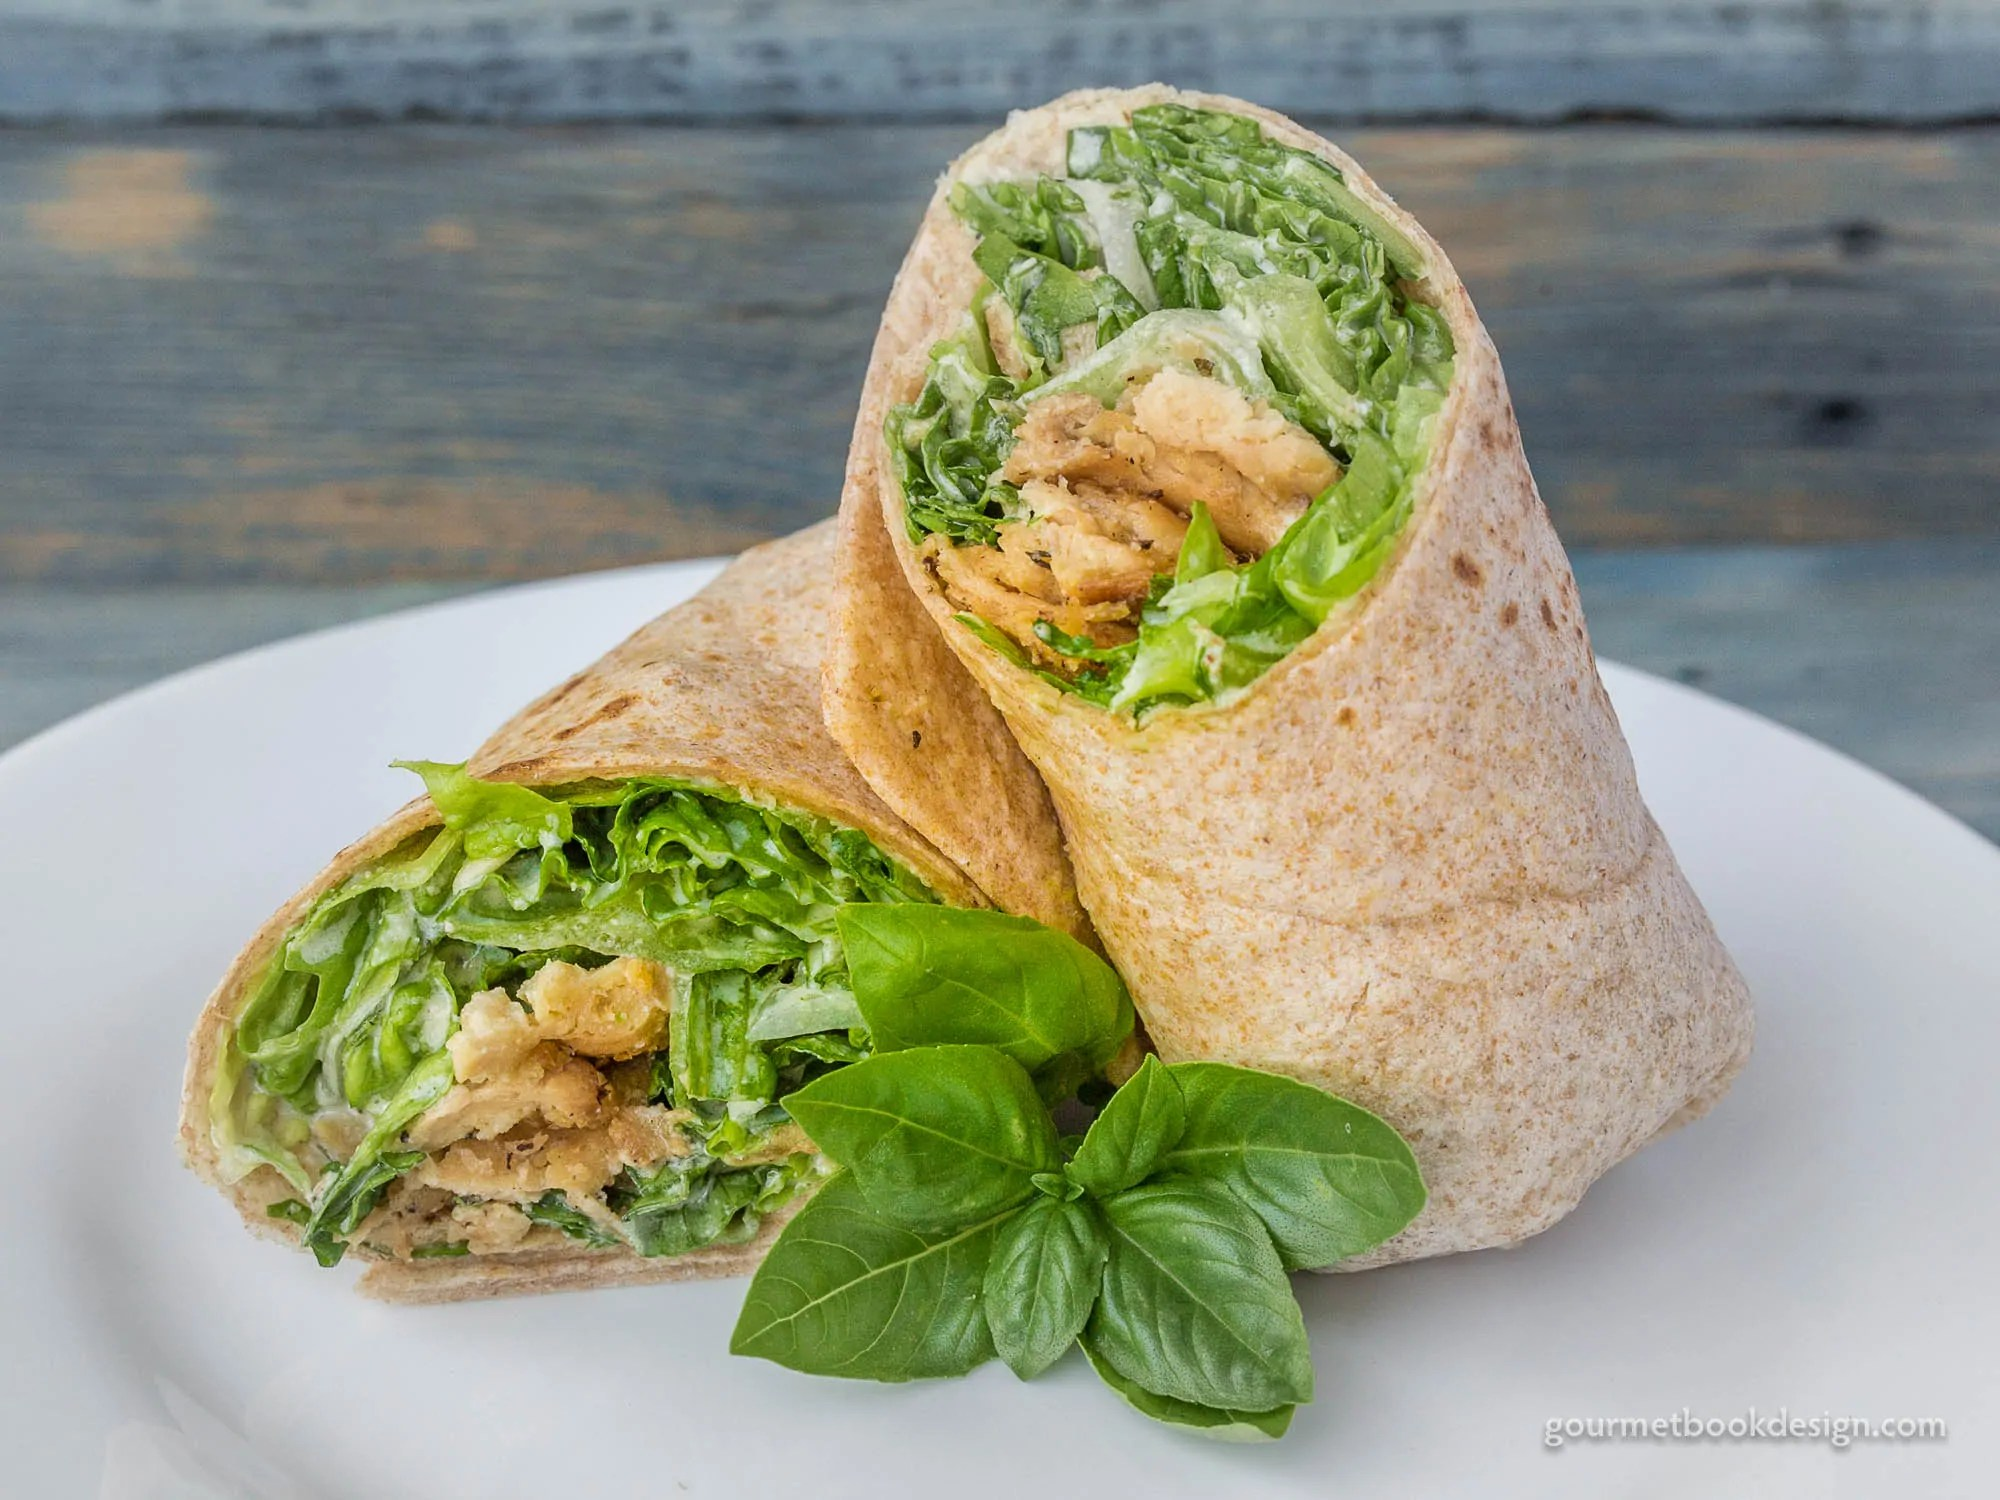 Ceasar wrap w/soy curls, Romaine, cucumber, & house-made Ceasar dressing